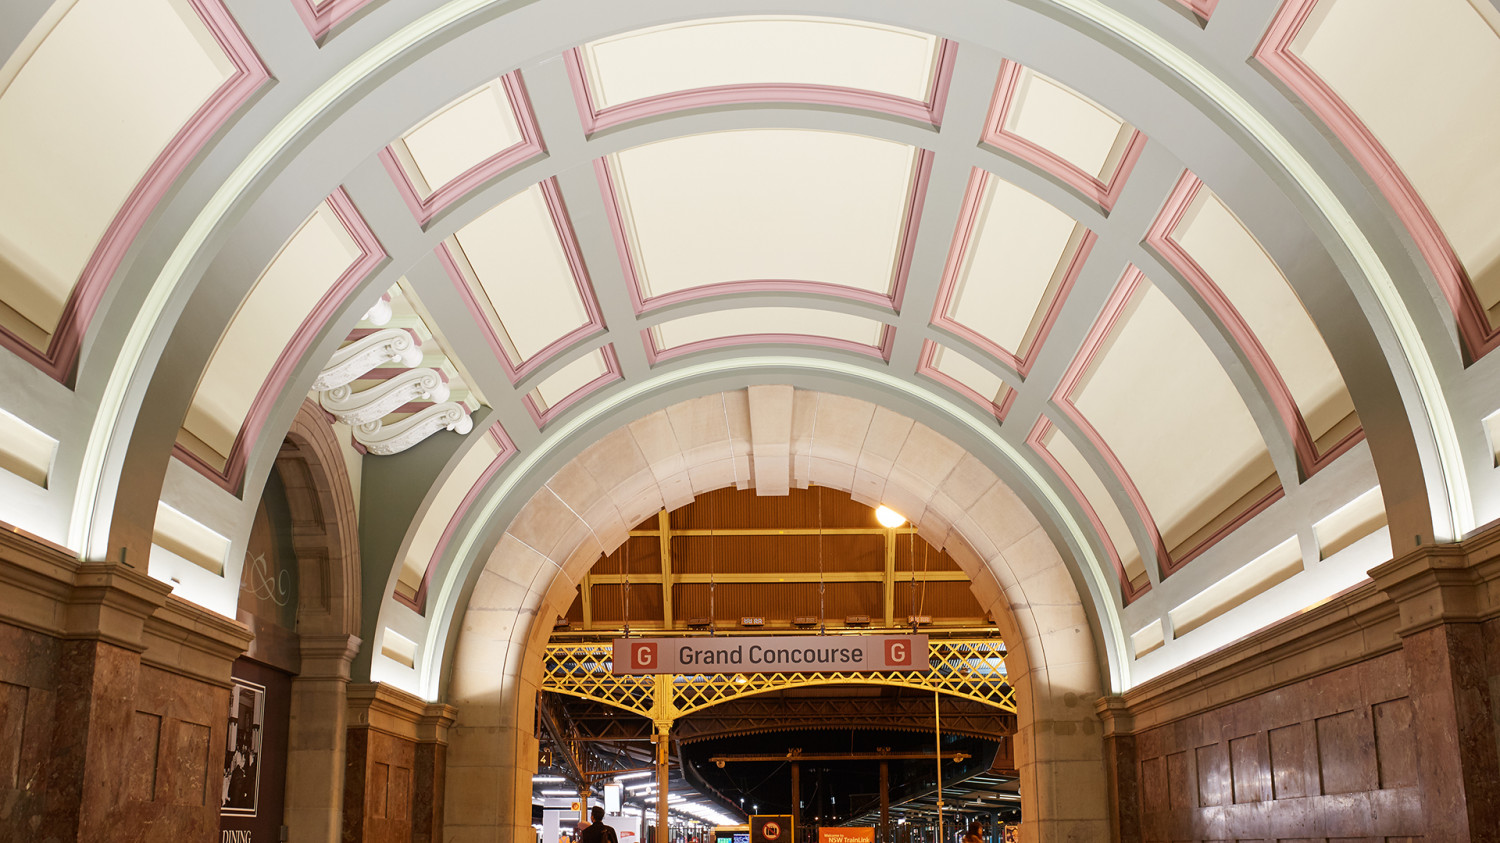 Central Station Grand Concourse